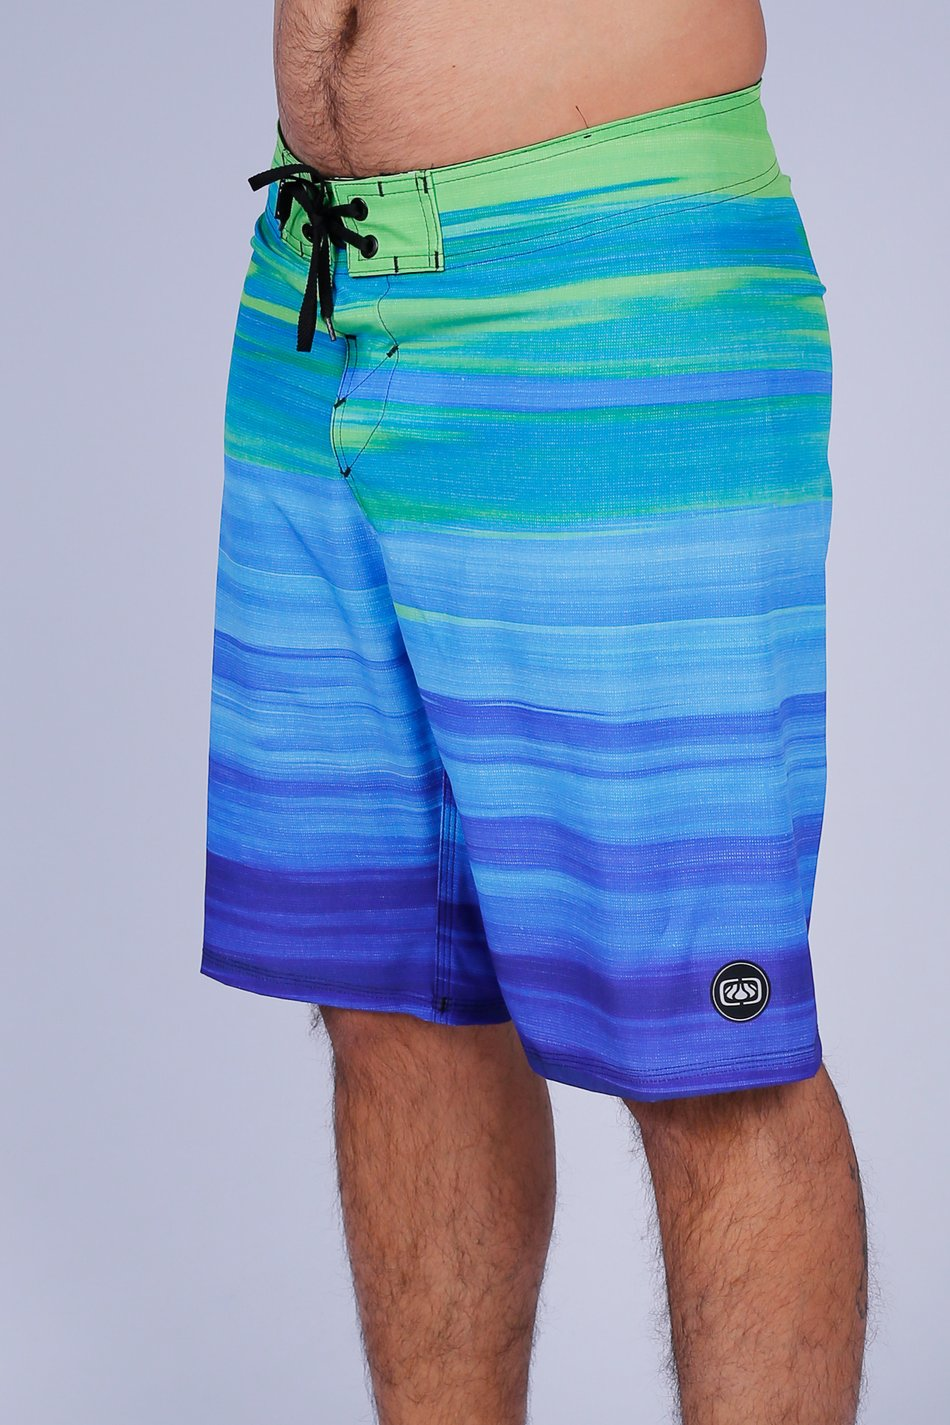 BERMUDA BOARDSHORT OCEANO GRADIENTE PERFORMANCE WATER REPELLENT